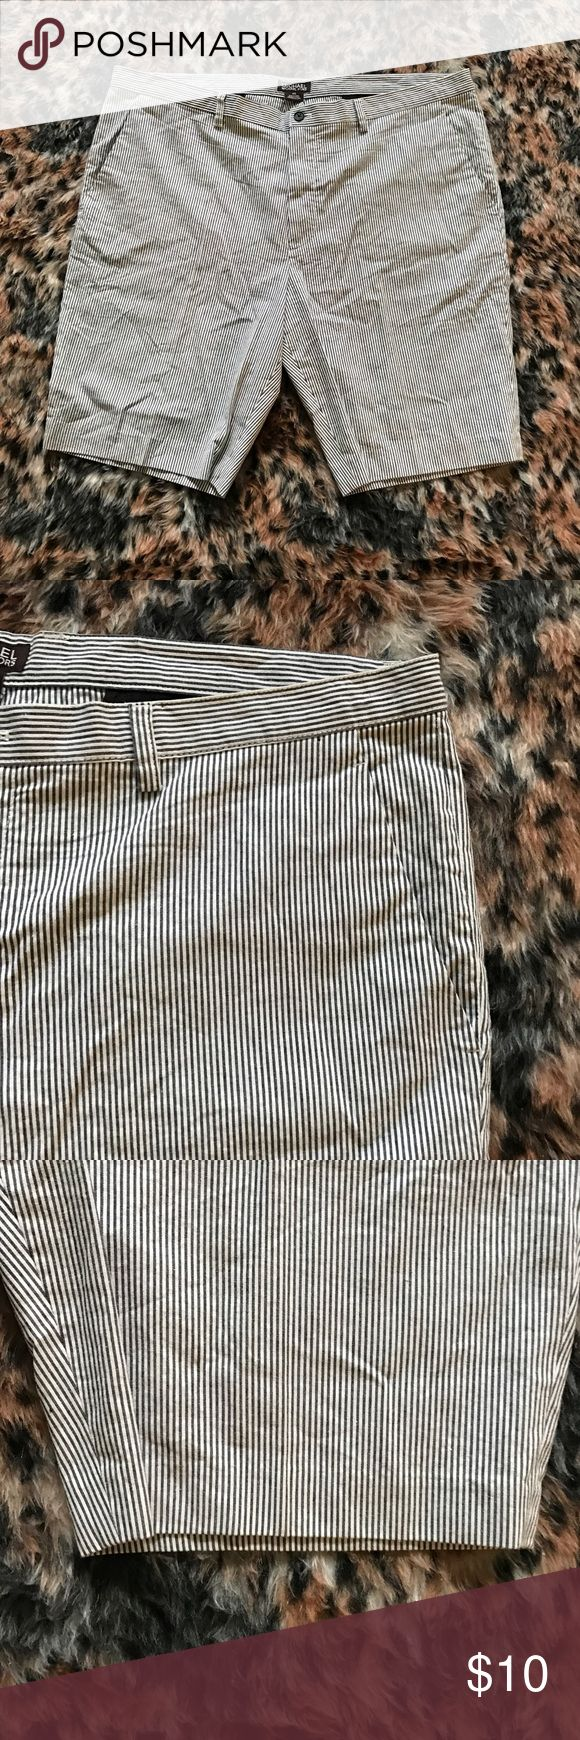 Michael Kors Pin Stripe Bermuda Chino Shorts A gently used black and white pin striped pair of bermuda shorts by Michael Kors in a size 40.   ✨ Ask me about free shipping! 💕 Always ships within 2 business day 🚫 I do not trade MICHAEL Michael Kors Shorts Cargo